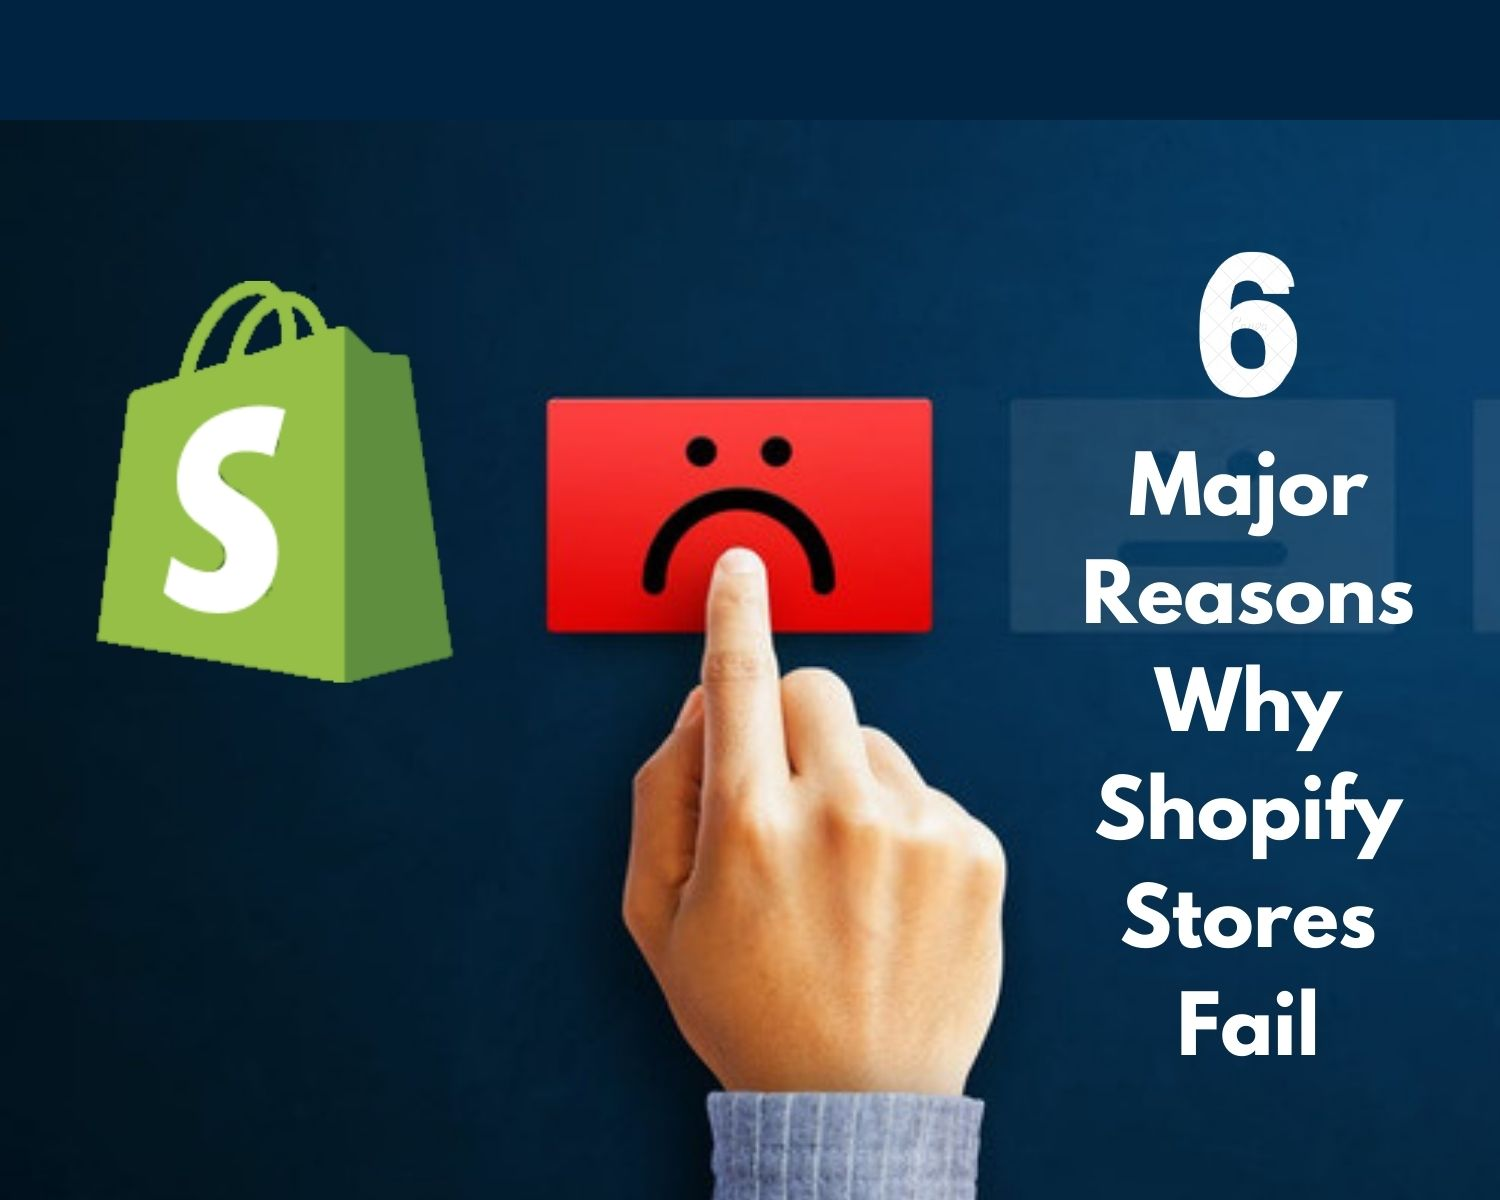 6 Major Reasons Why Shopify Stores Fail